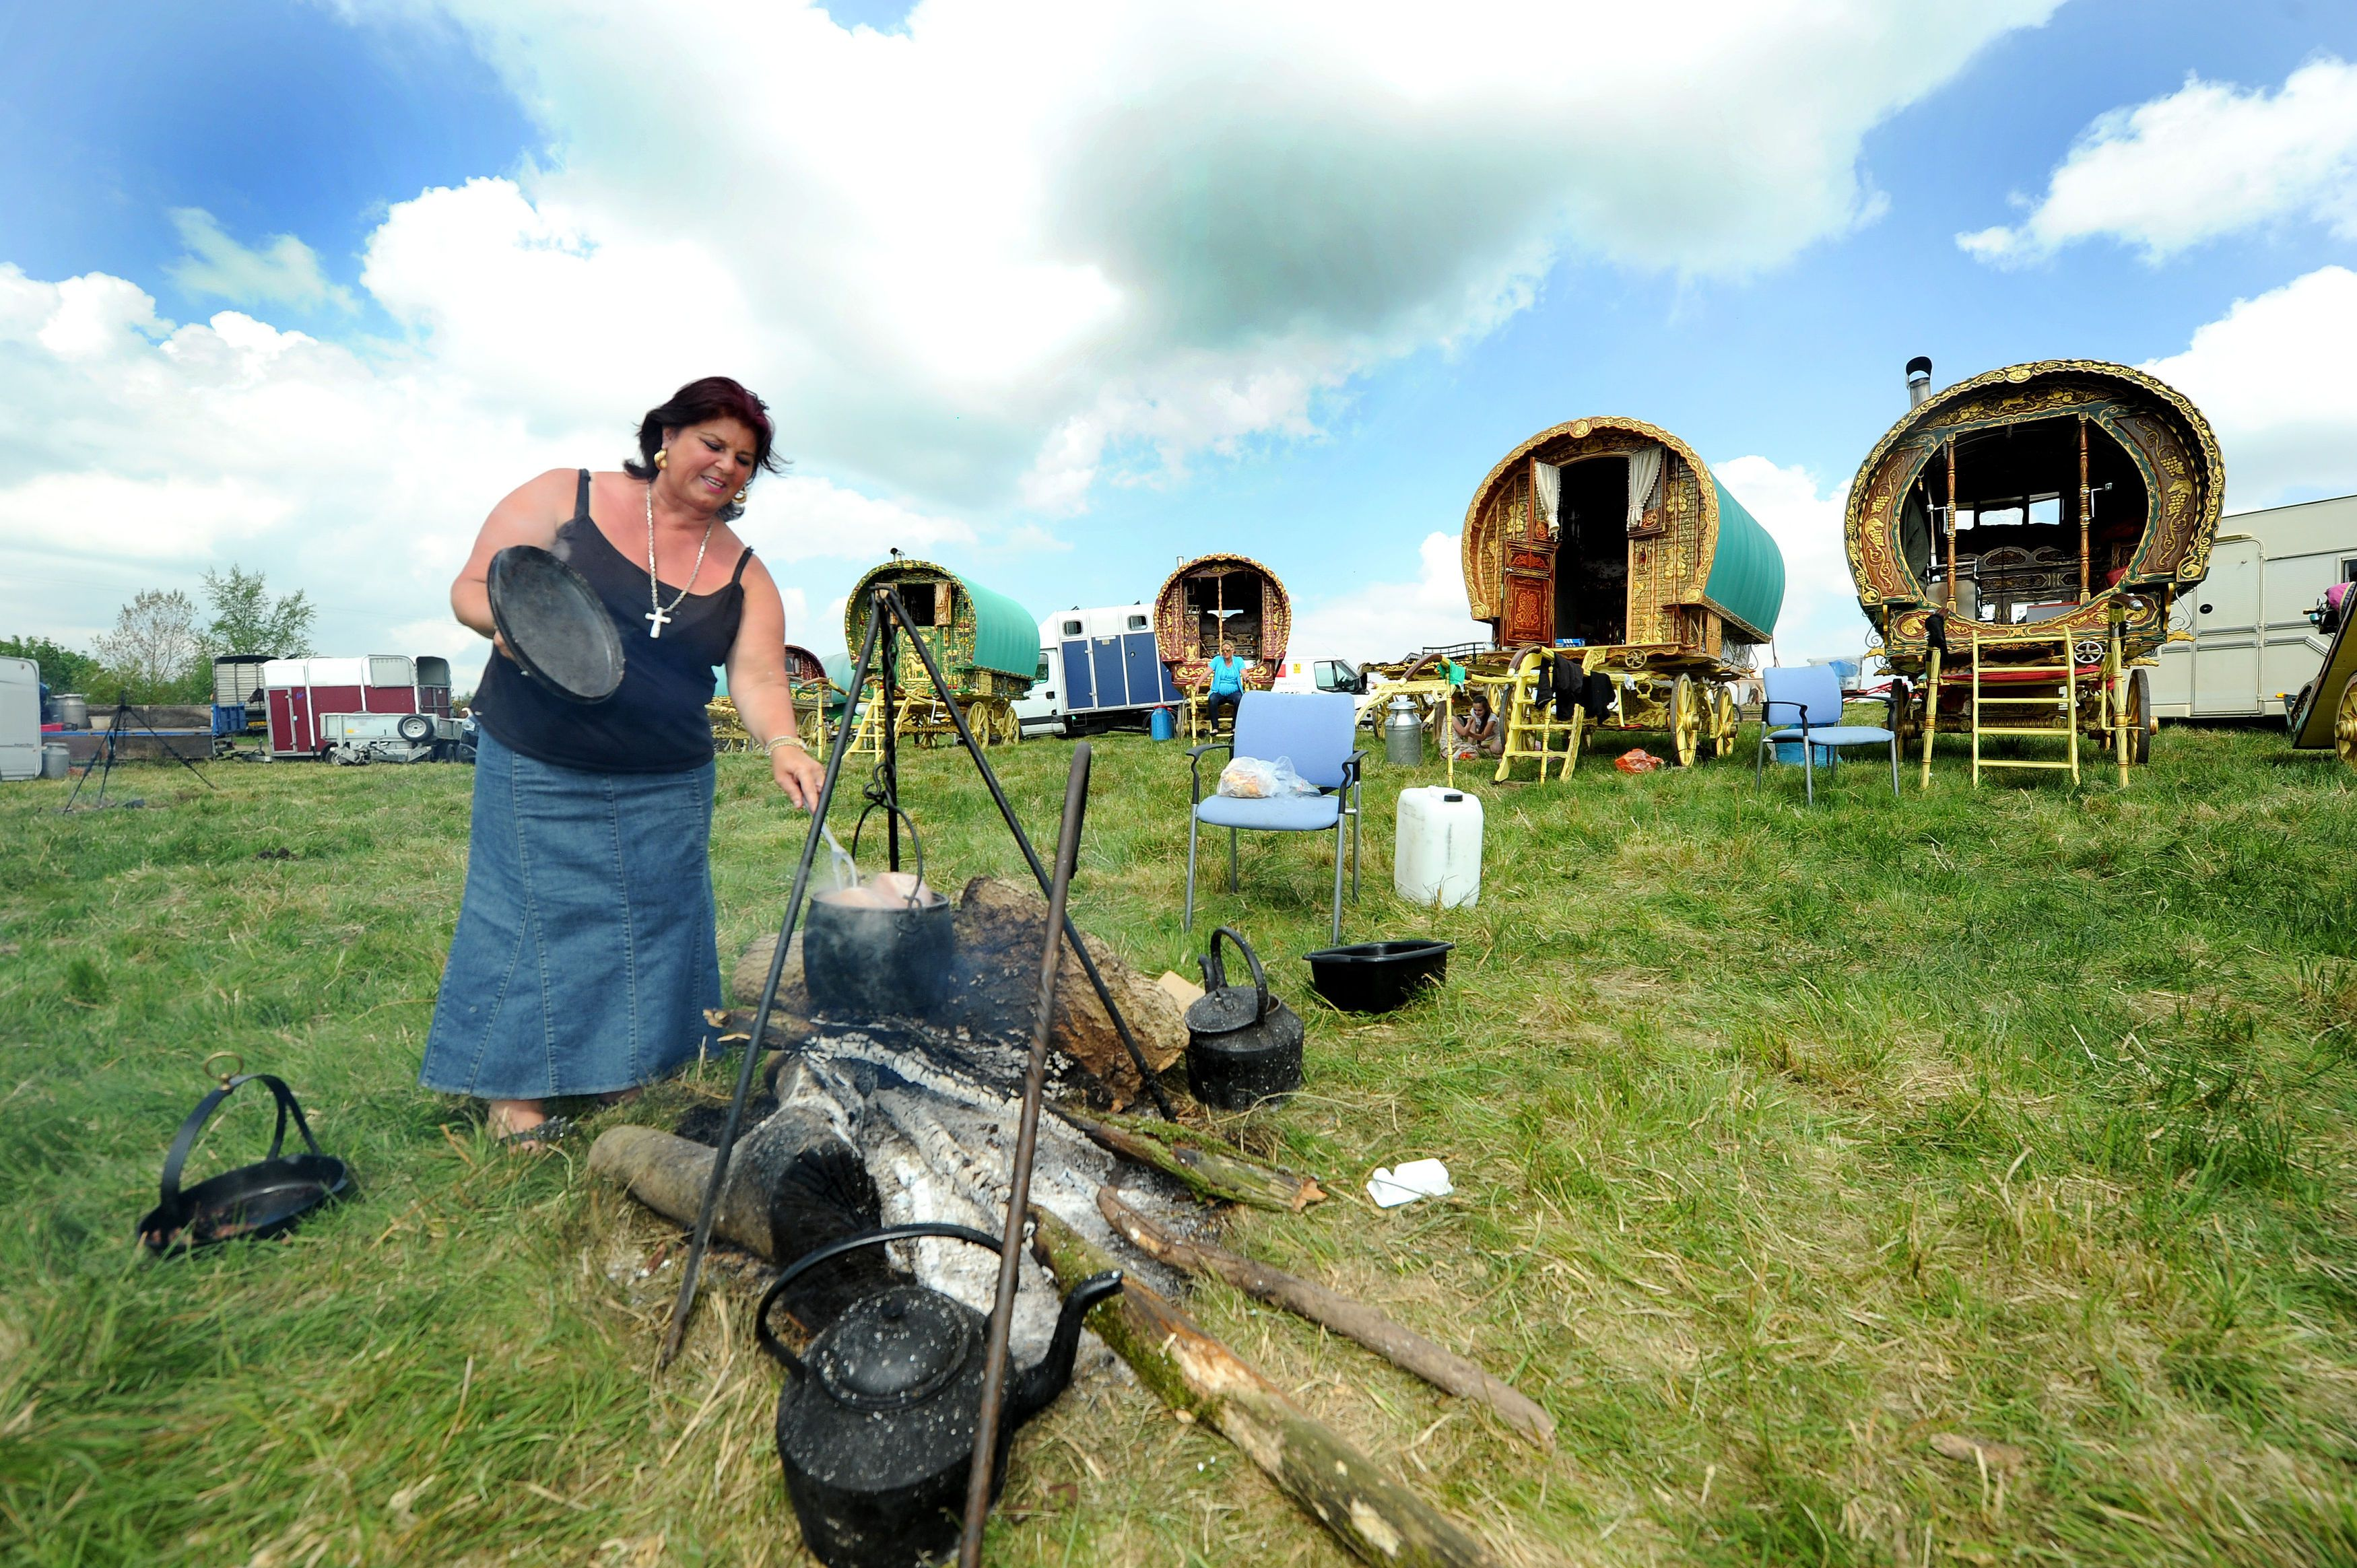 Gypsies and travellers gather at Appleby Horse Fair